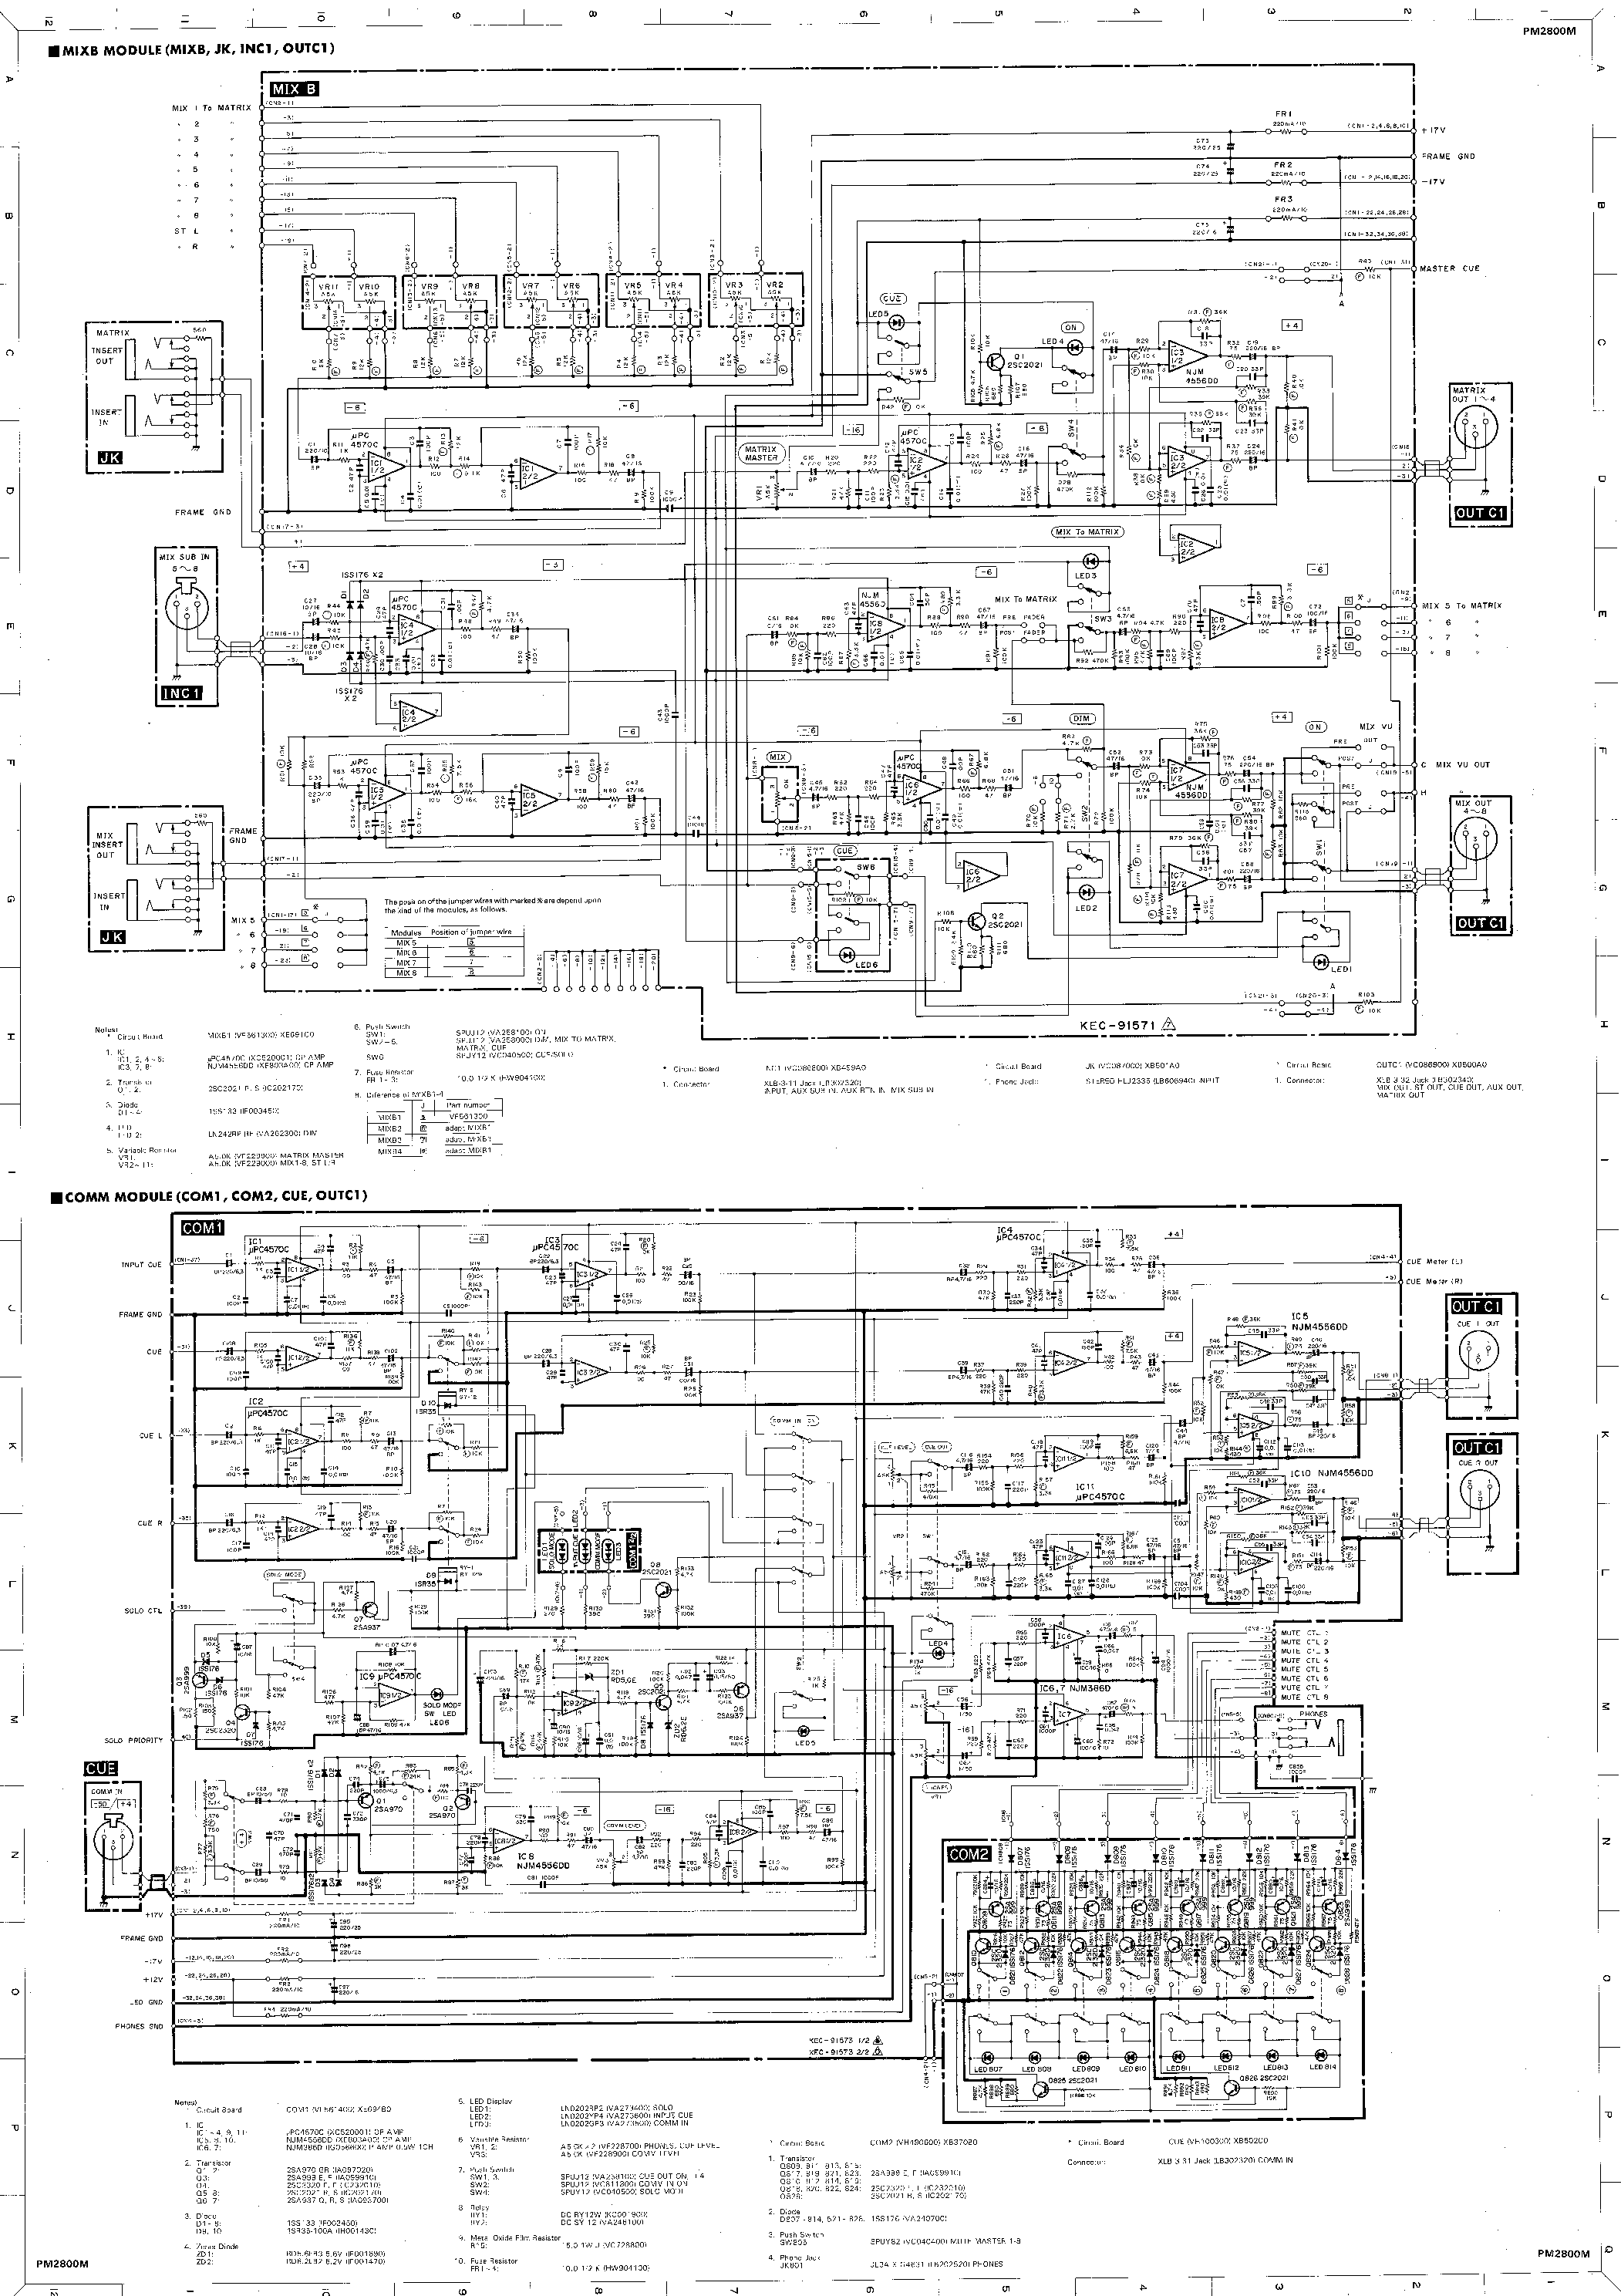 YAMAHA M2800M PW2800 SCHEMATIC Service Manual download